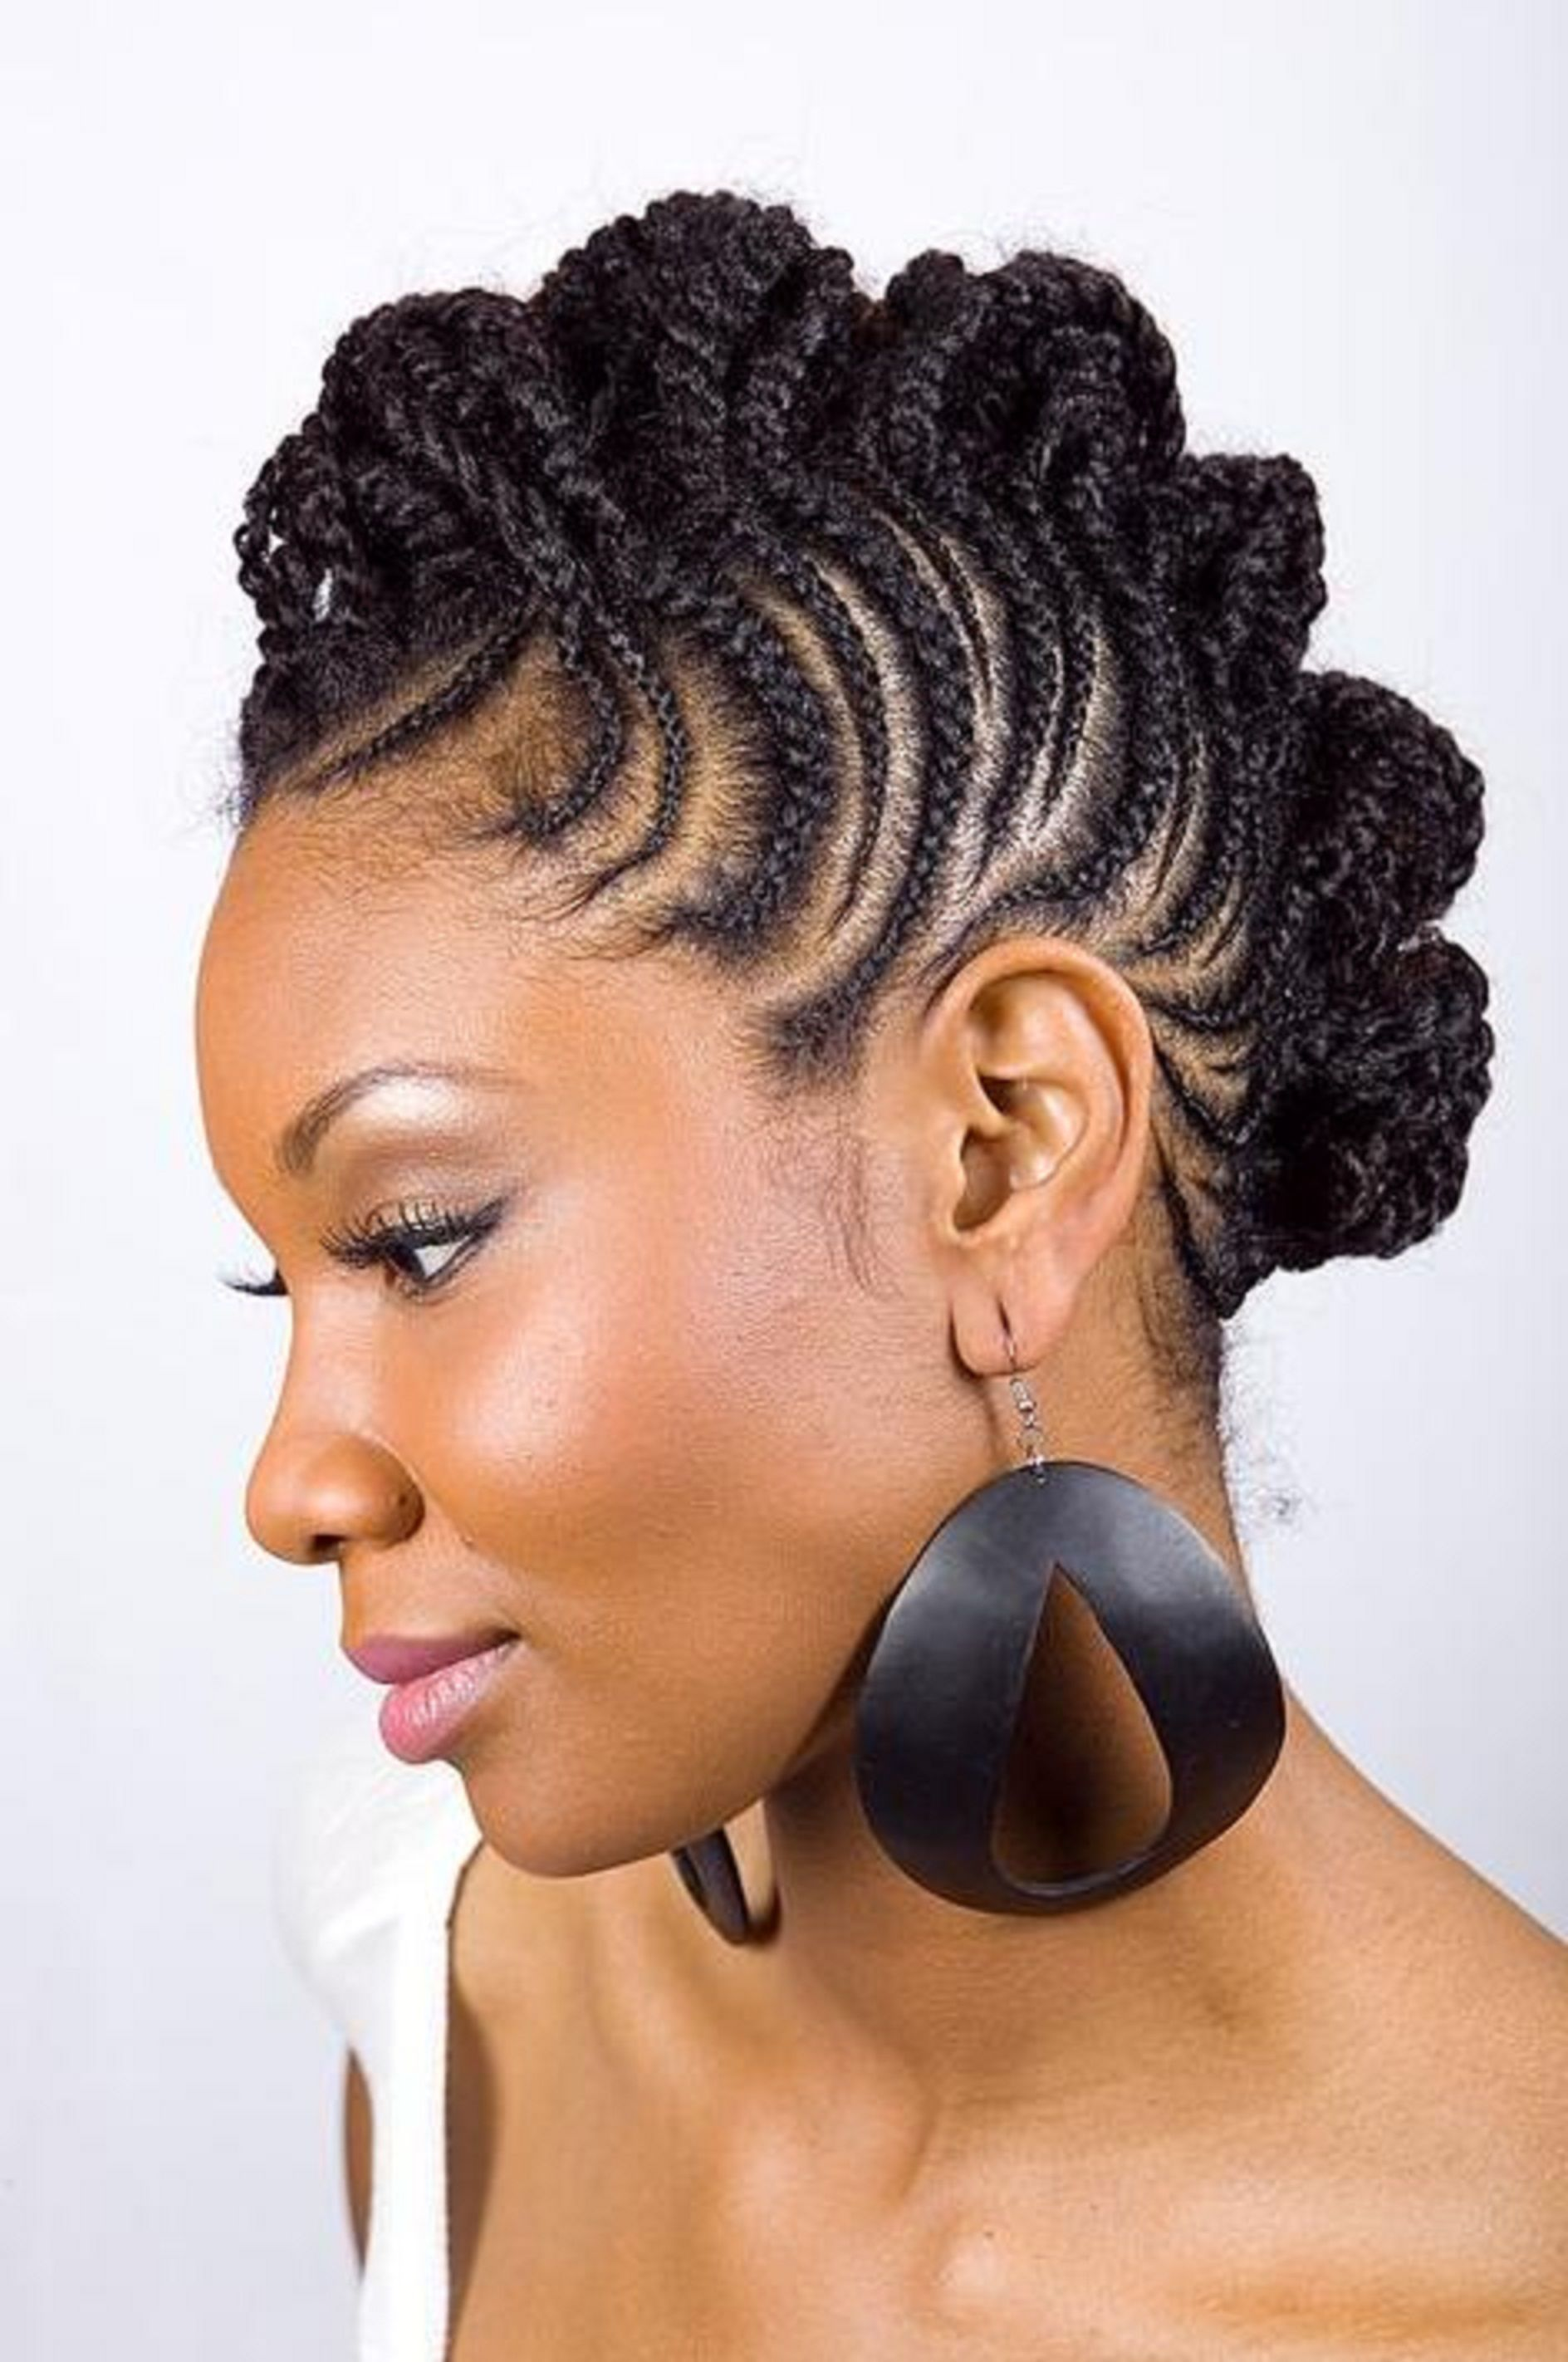 black girl hairstyles ideas that turns head | modern fashion style